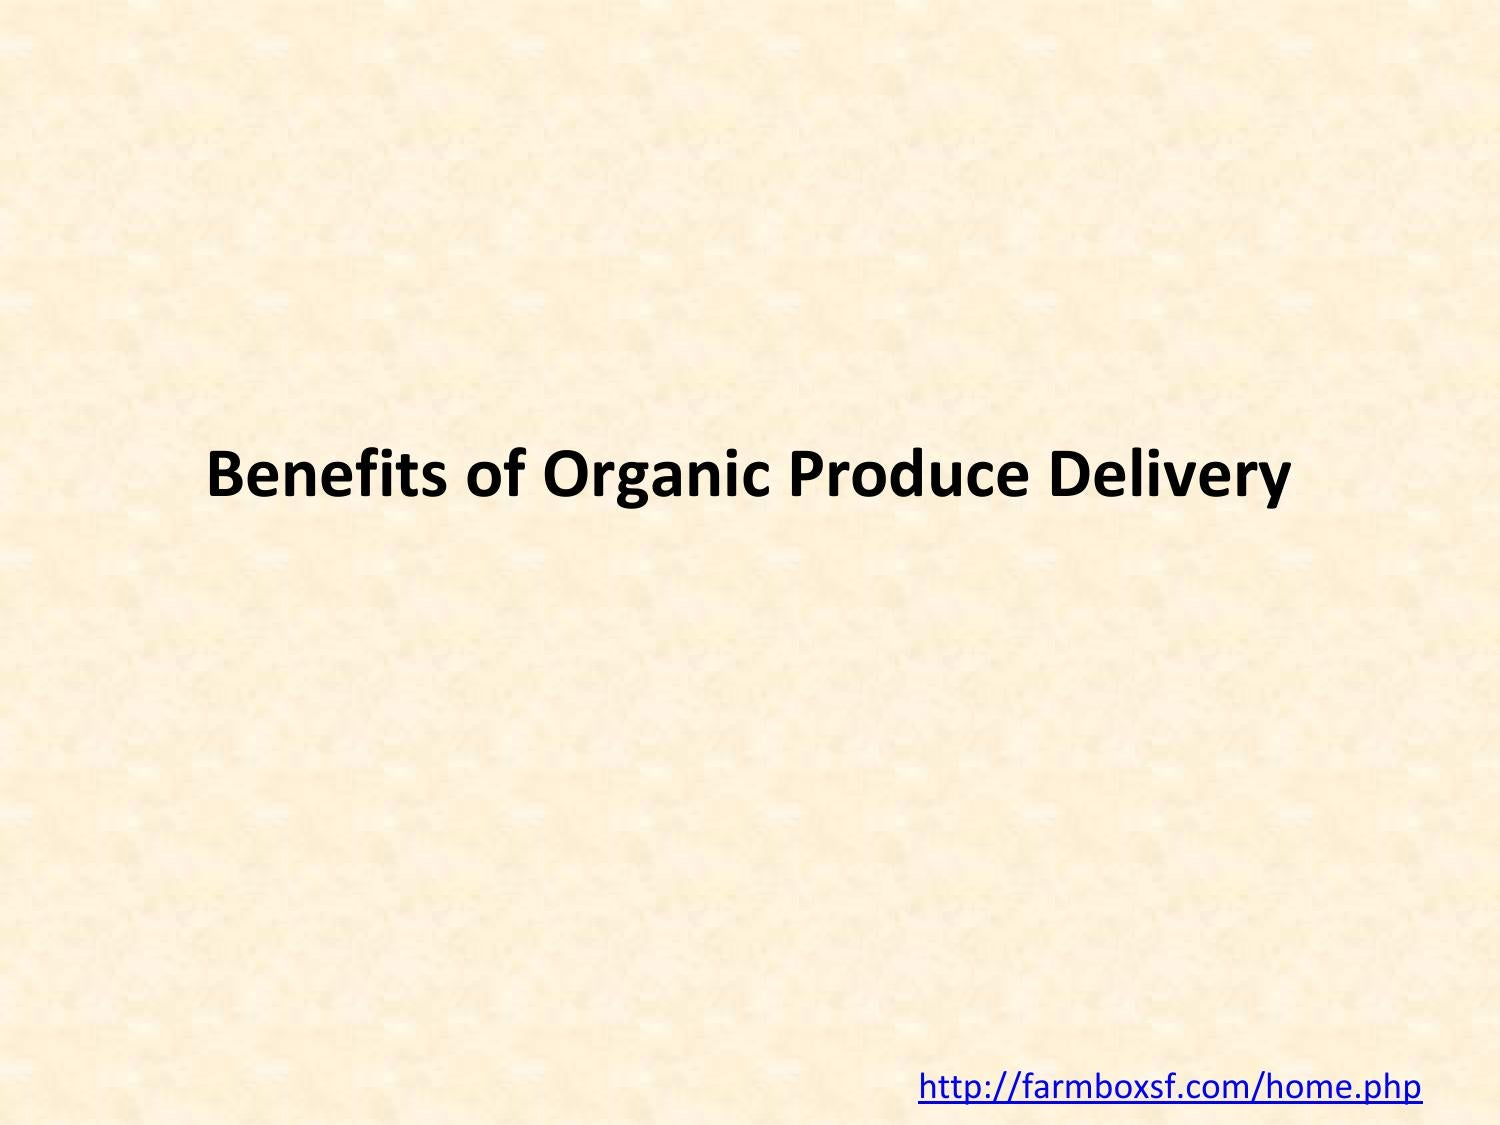 Benefits of organic produce delivery by stellamarcy - Issuu